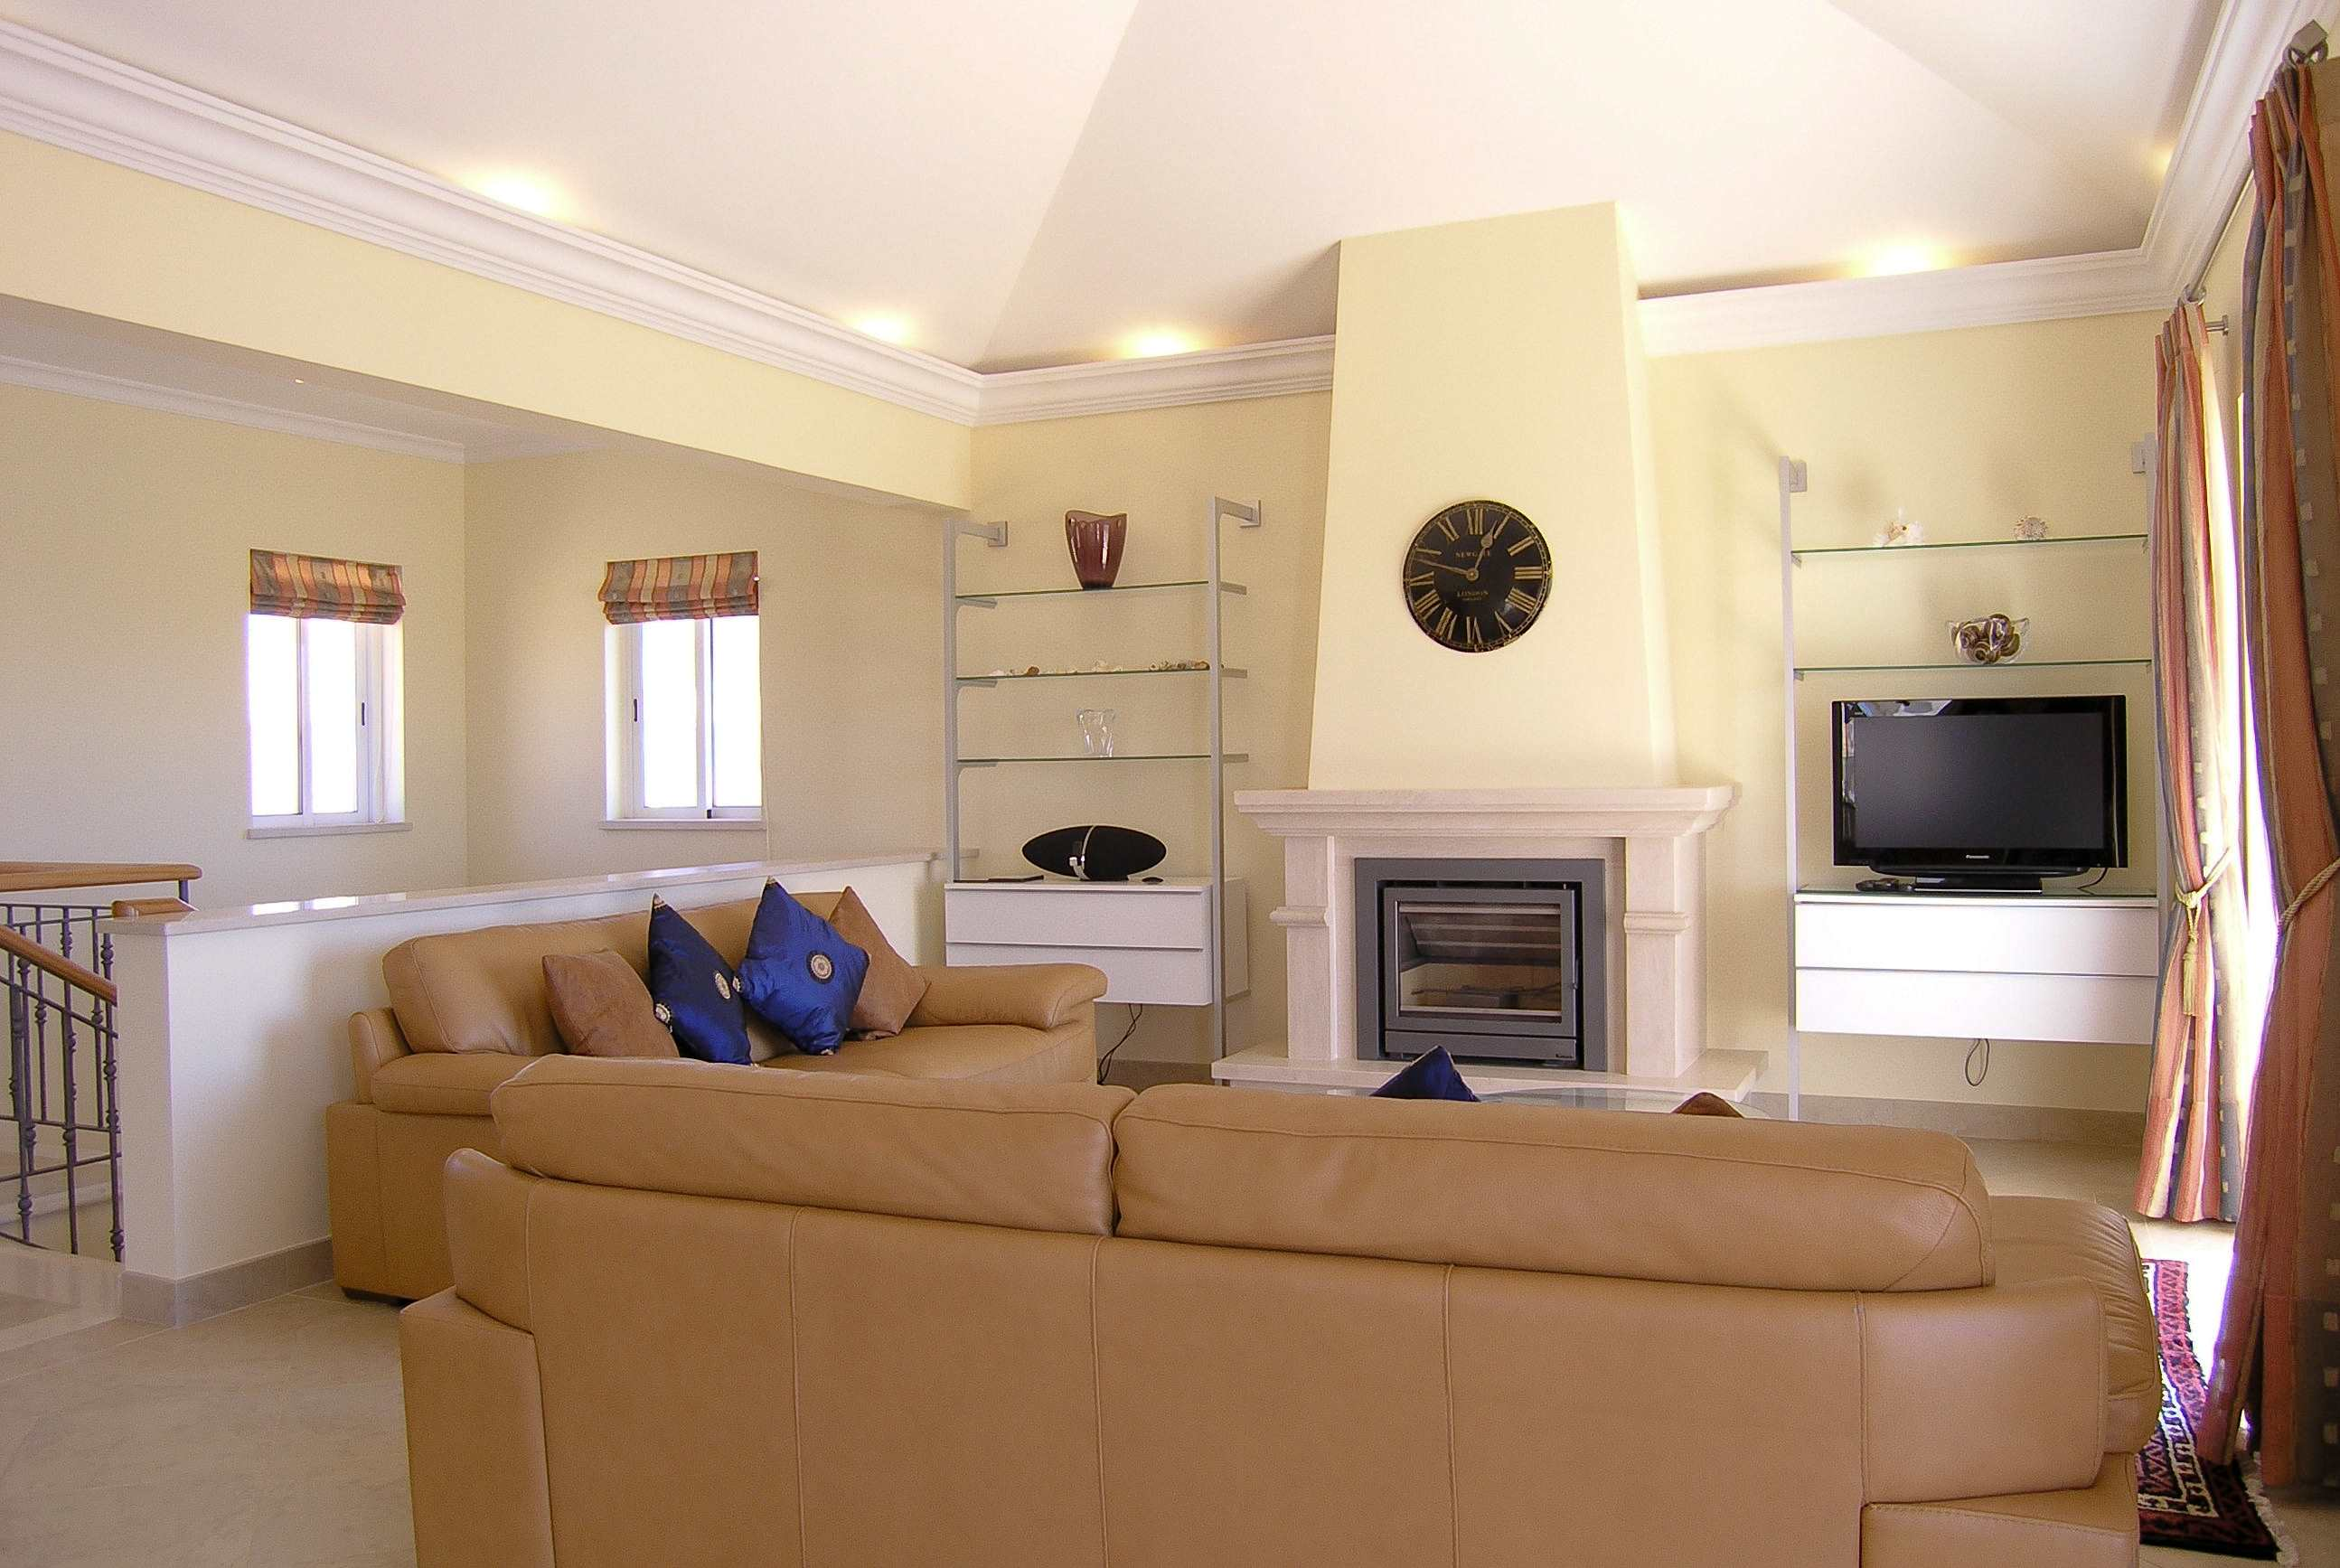 Martinhal Luxury Villa No.27, Four Bedroom Villa, 4 bedroom villa in Martinhal Sagres, Algarve Photo #5